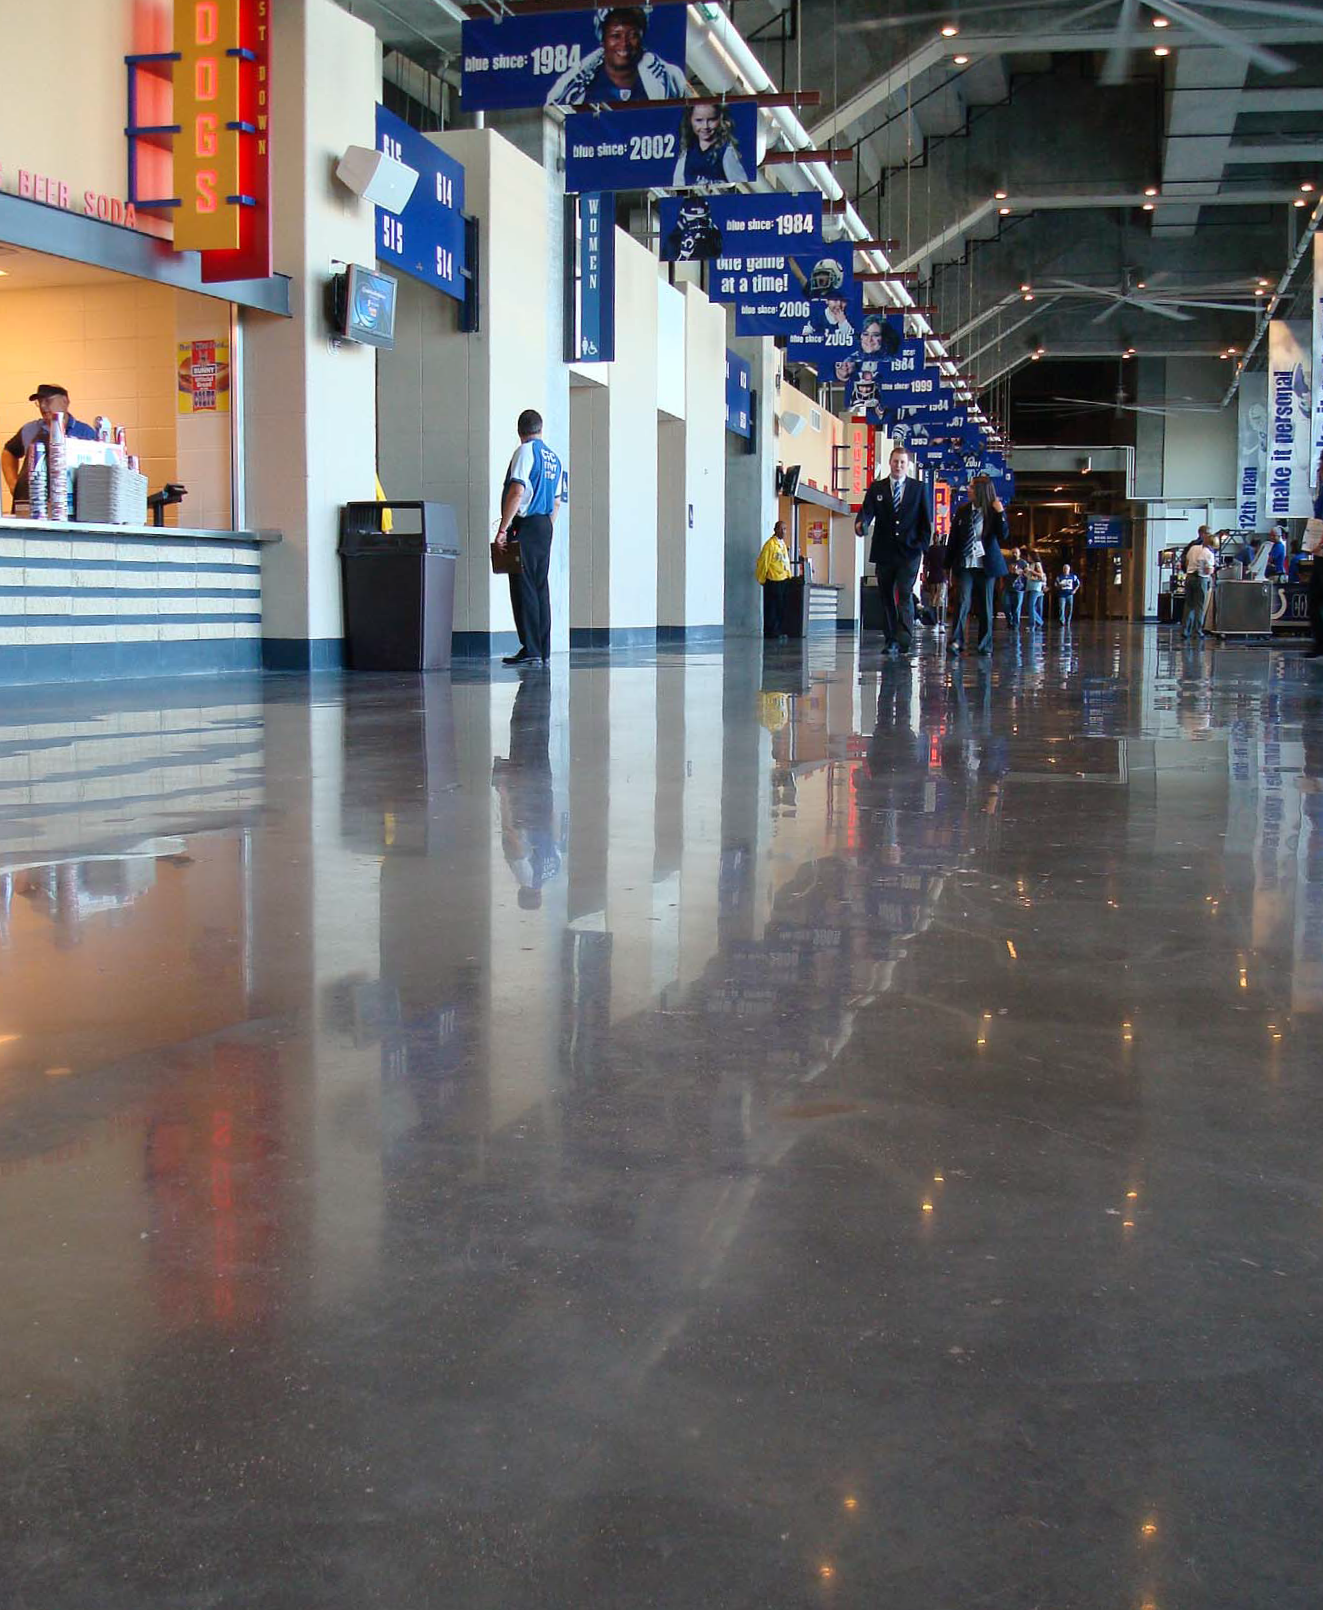 Lucas Oil Stadium, home of the Indianapolis Colts pro football team, as polished by American Concrete Concepts inc., of Springdale, Ark. Photos courtesy of American Concrete Concepts Inc.